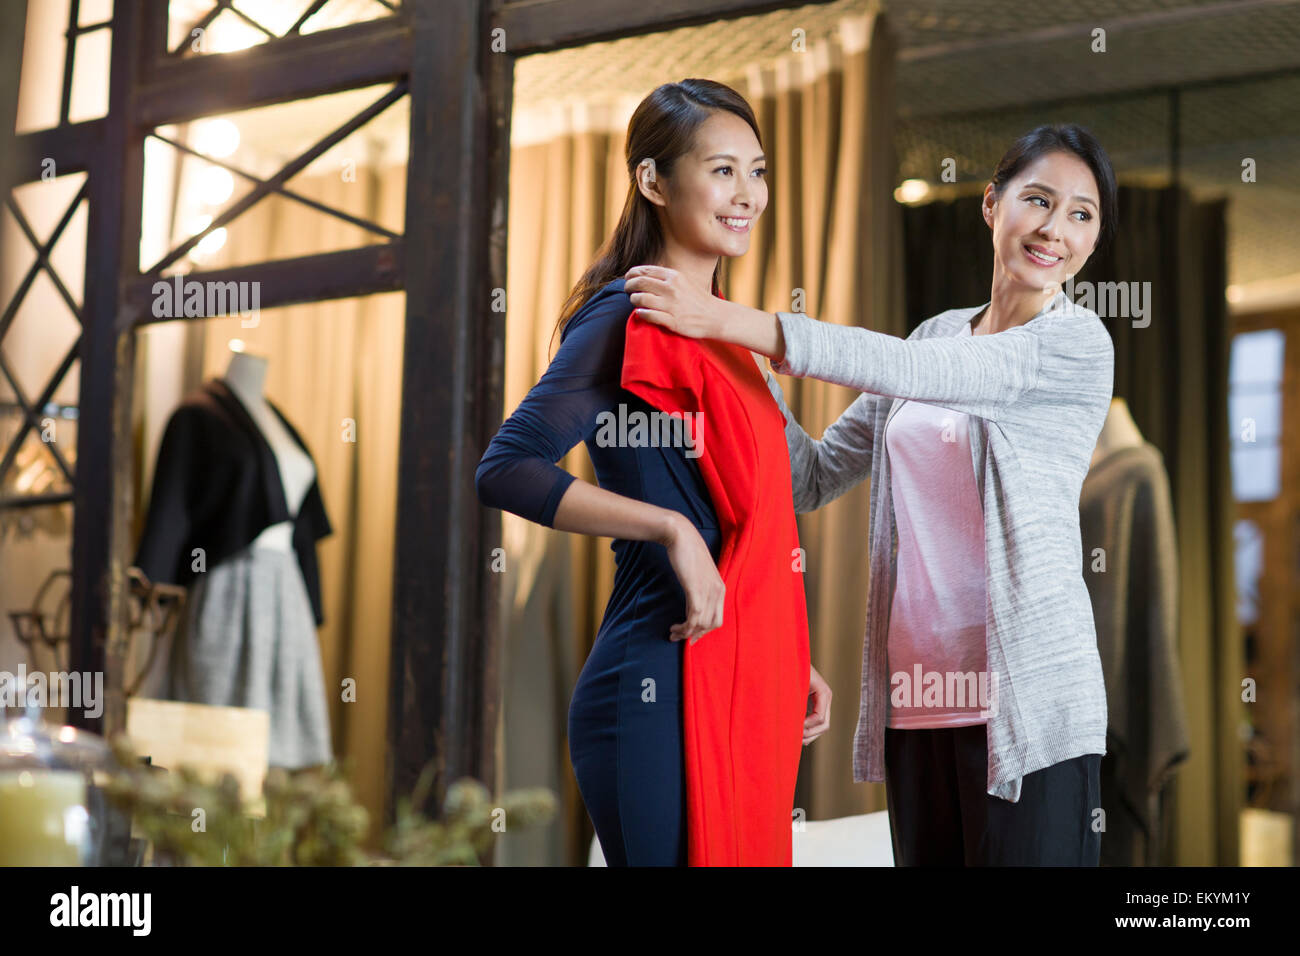 Clothing store owner helping customer with choosing dress - Stock Image